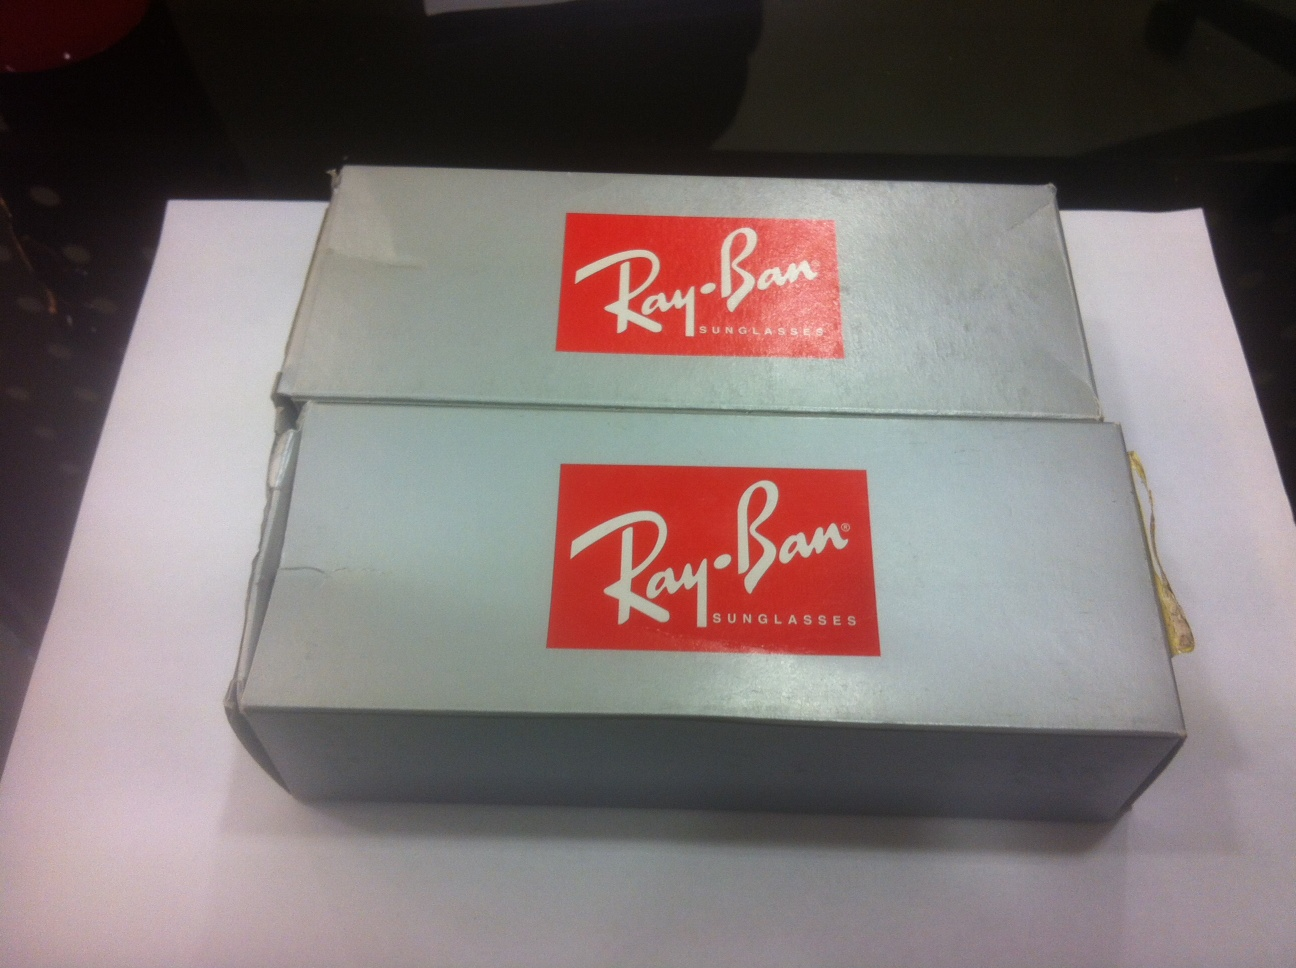 ray ban aviator large metal rb3025 w3234 ray-ban sunglasses online scam